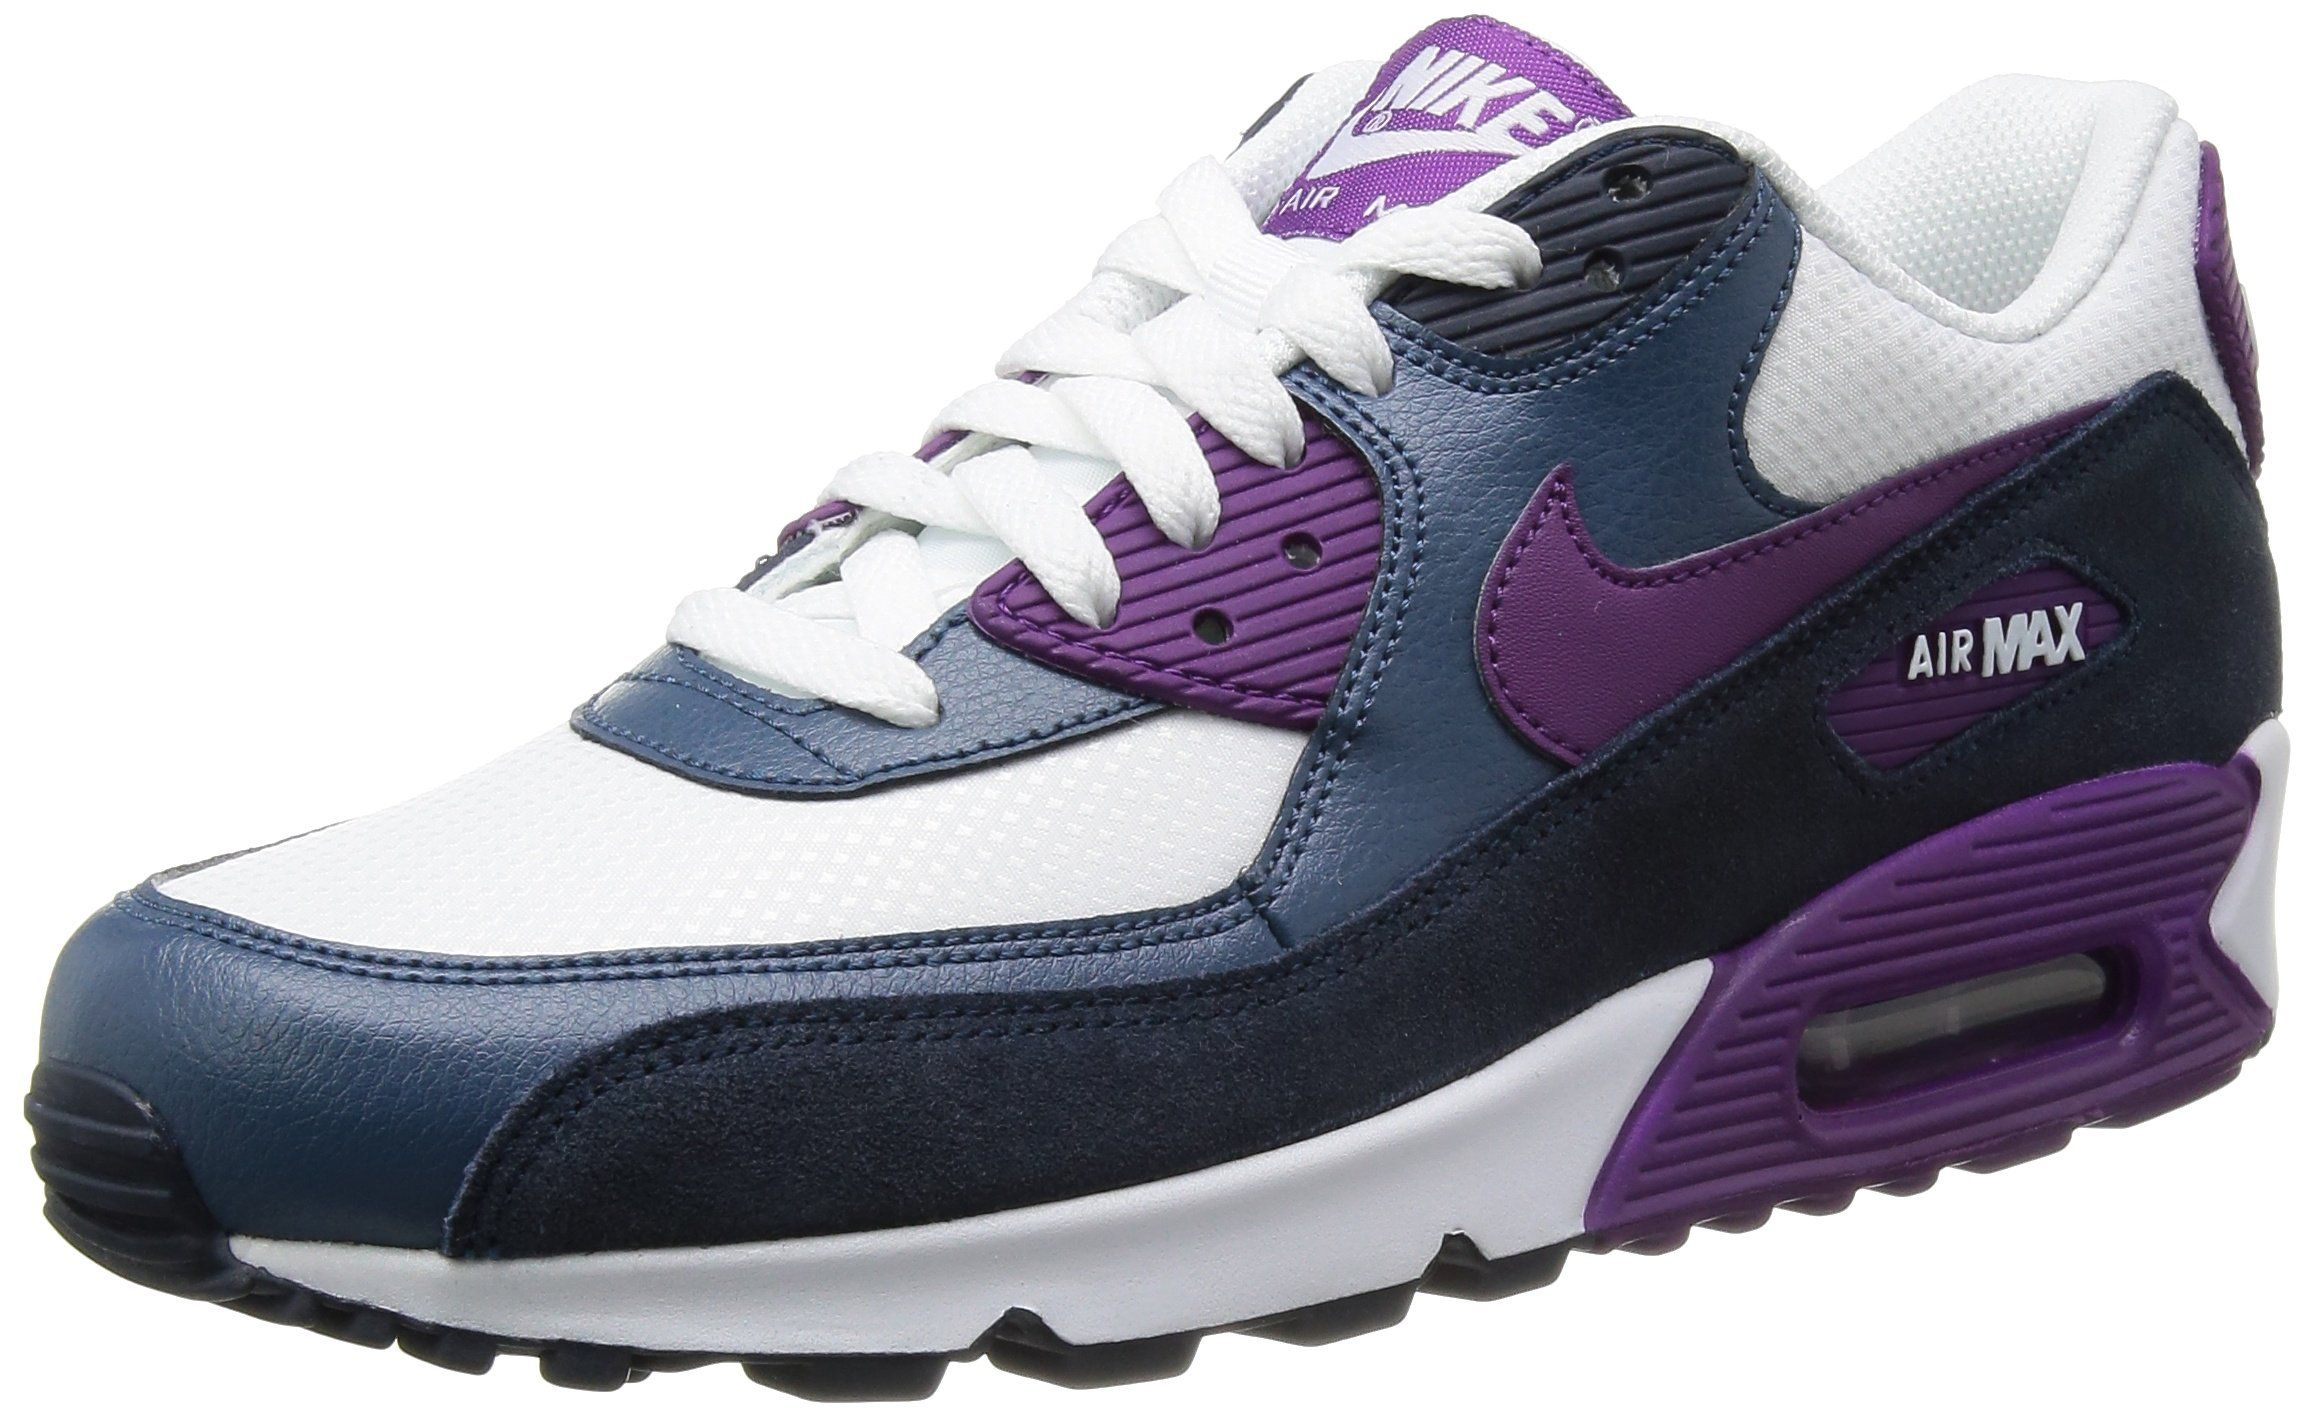 wholesale dealer 32eb1 3a42c Nike Women s Air Max 90 Essential - White   Bright Grape-Obsidian-New Slate,  7 B US